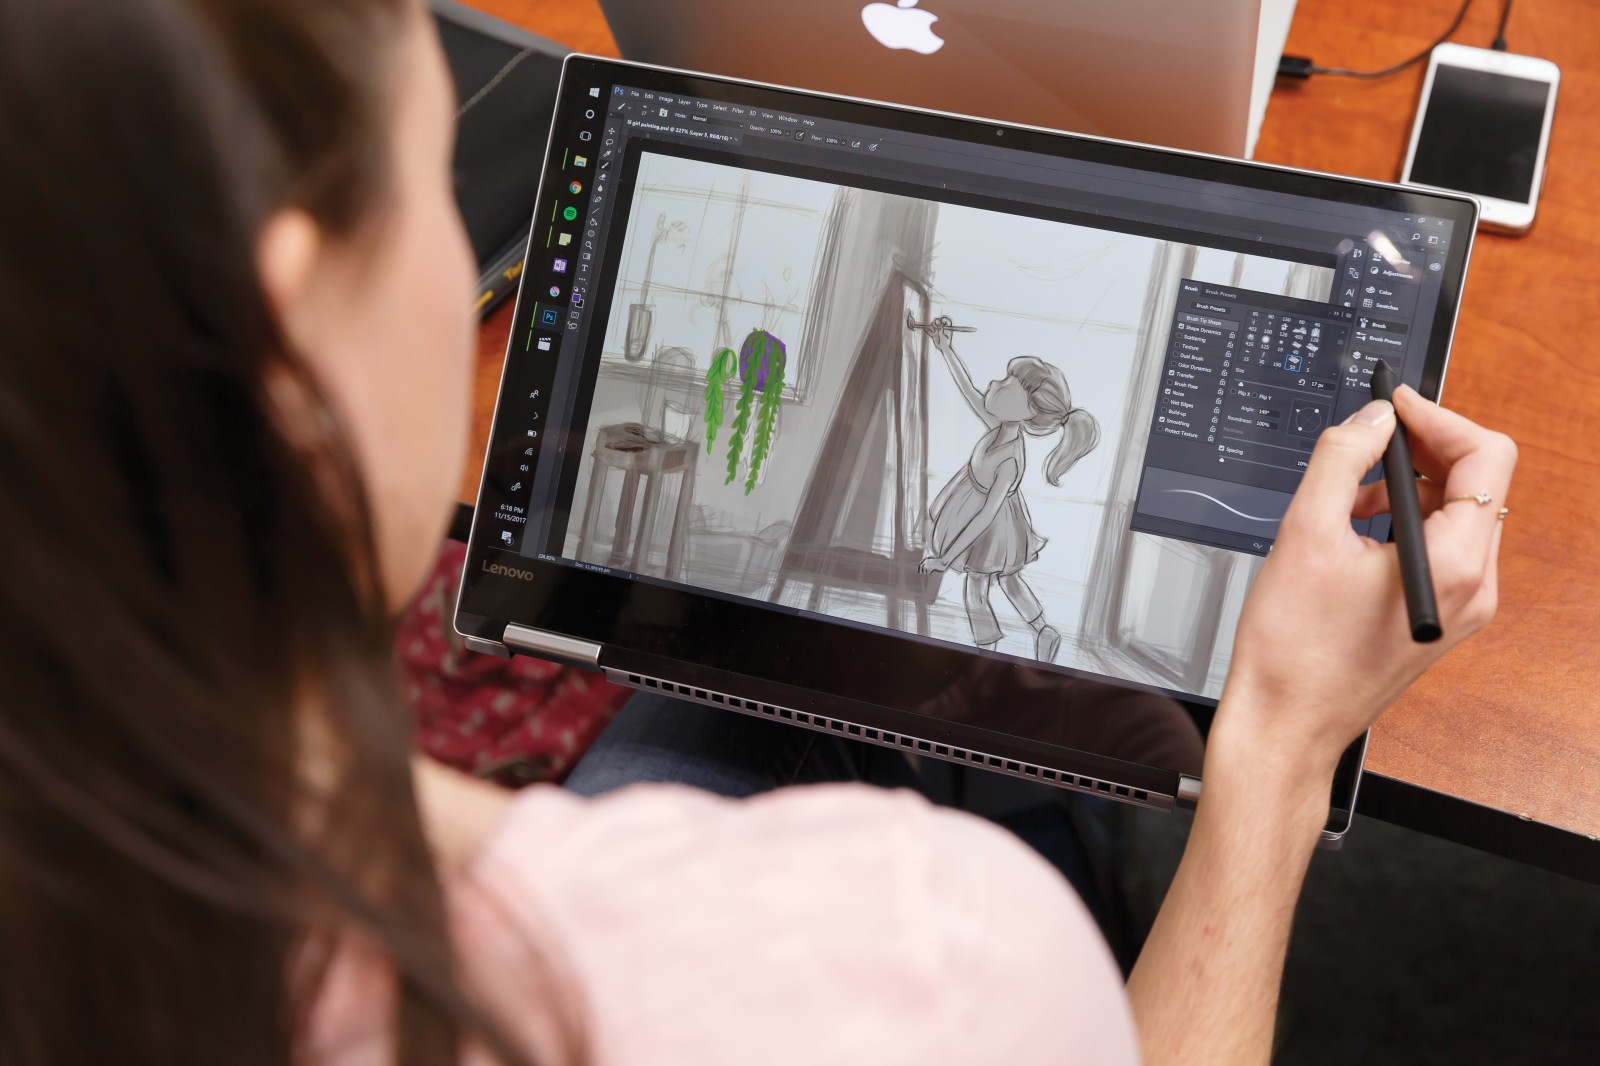 APU's animation and visual effects major prepares students to make a difference as skilled animators and storytellers in an influential industry.